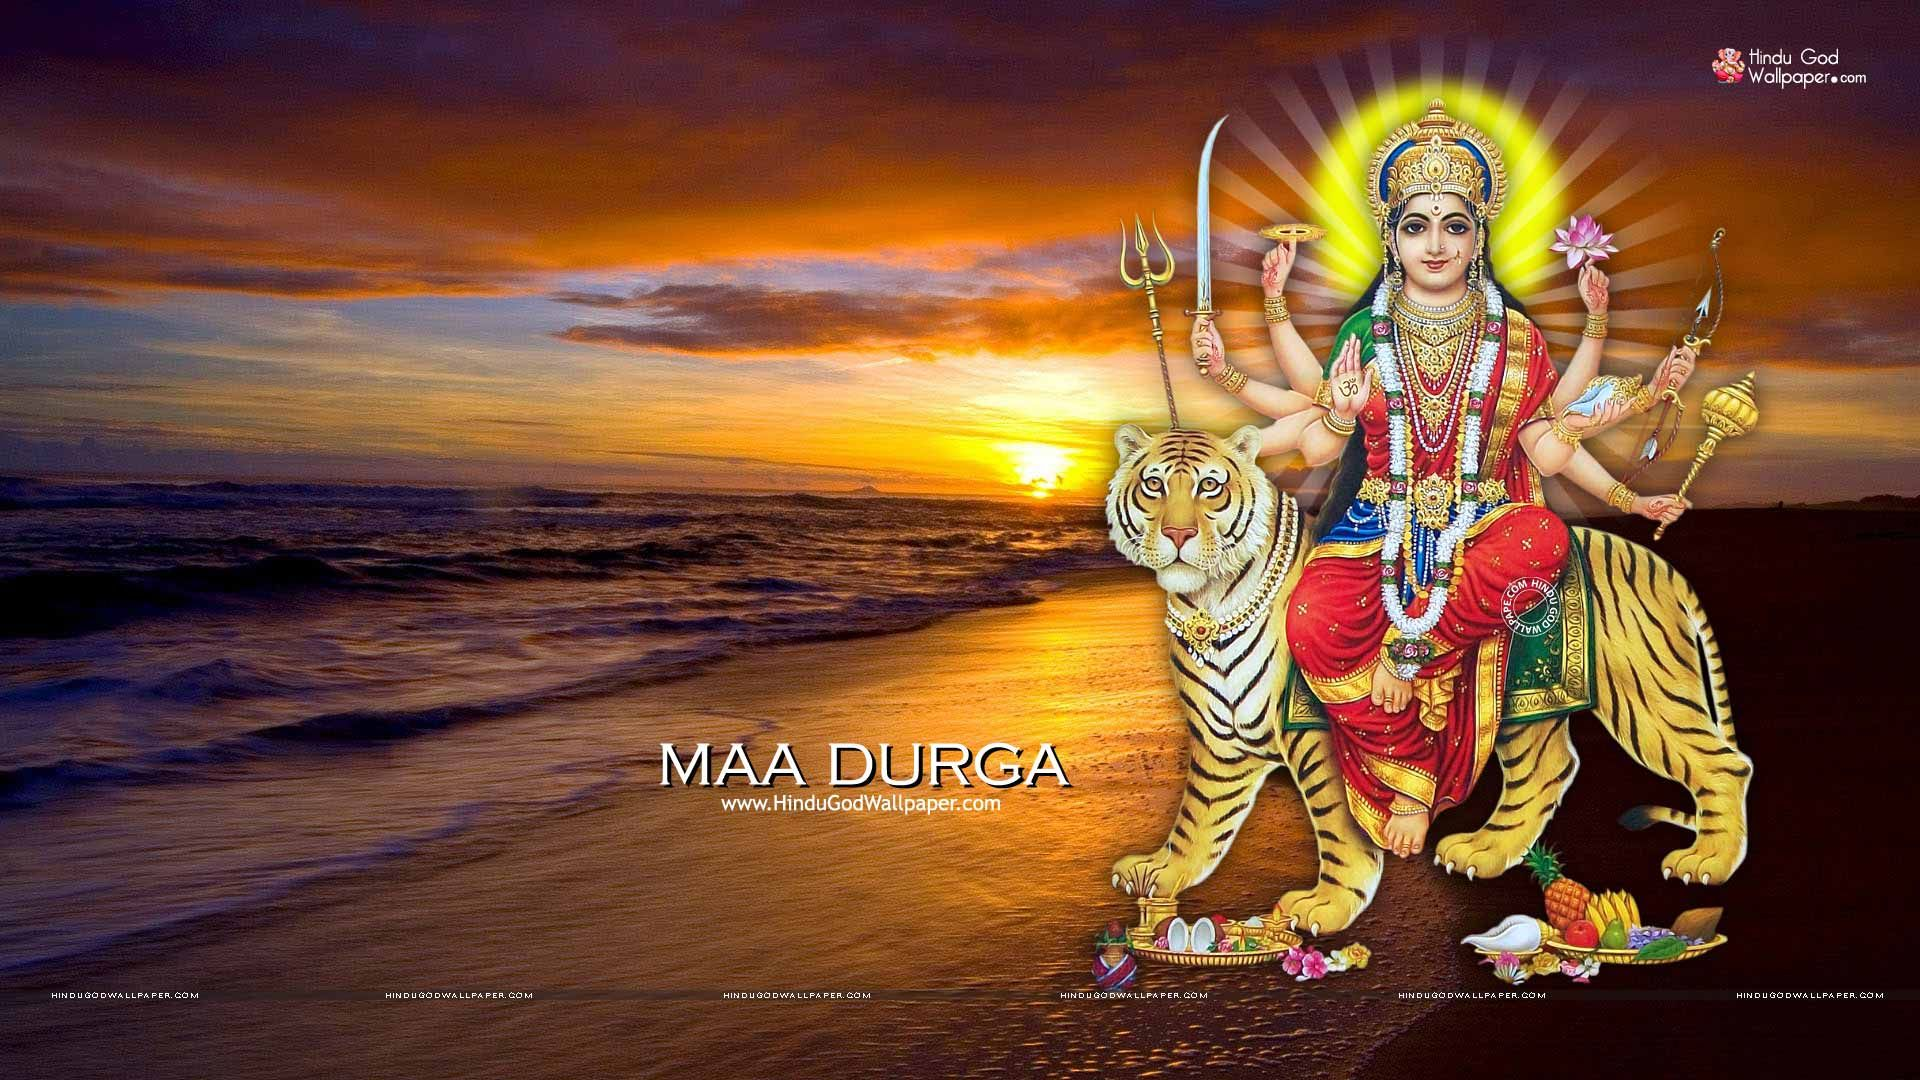 Maa Durga Hd Wallpaper 1080p Maa Durga Hd Wallpaper Maa Wallpaper Maa Durga Hd